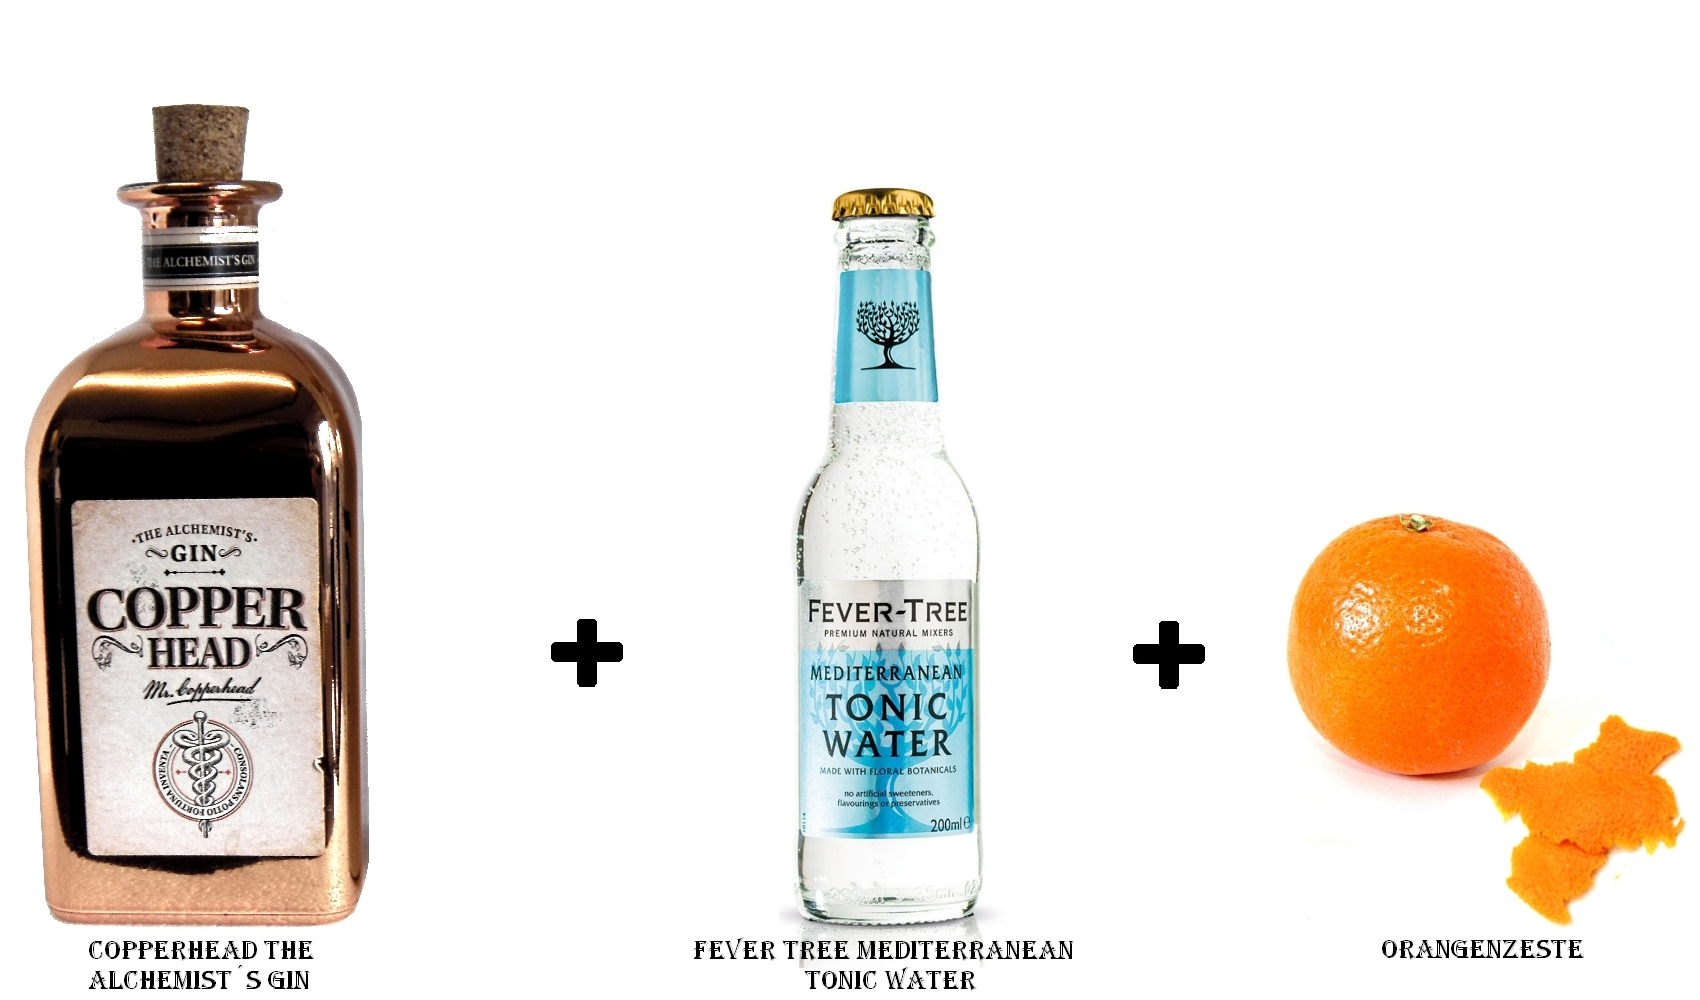 Copperhead The Alchemist´s Gin + Fever Tree Mediterranean Tonic Water + Orangenzeste